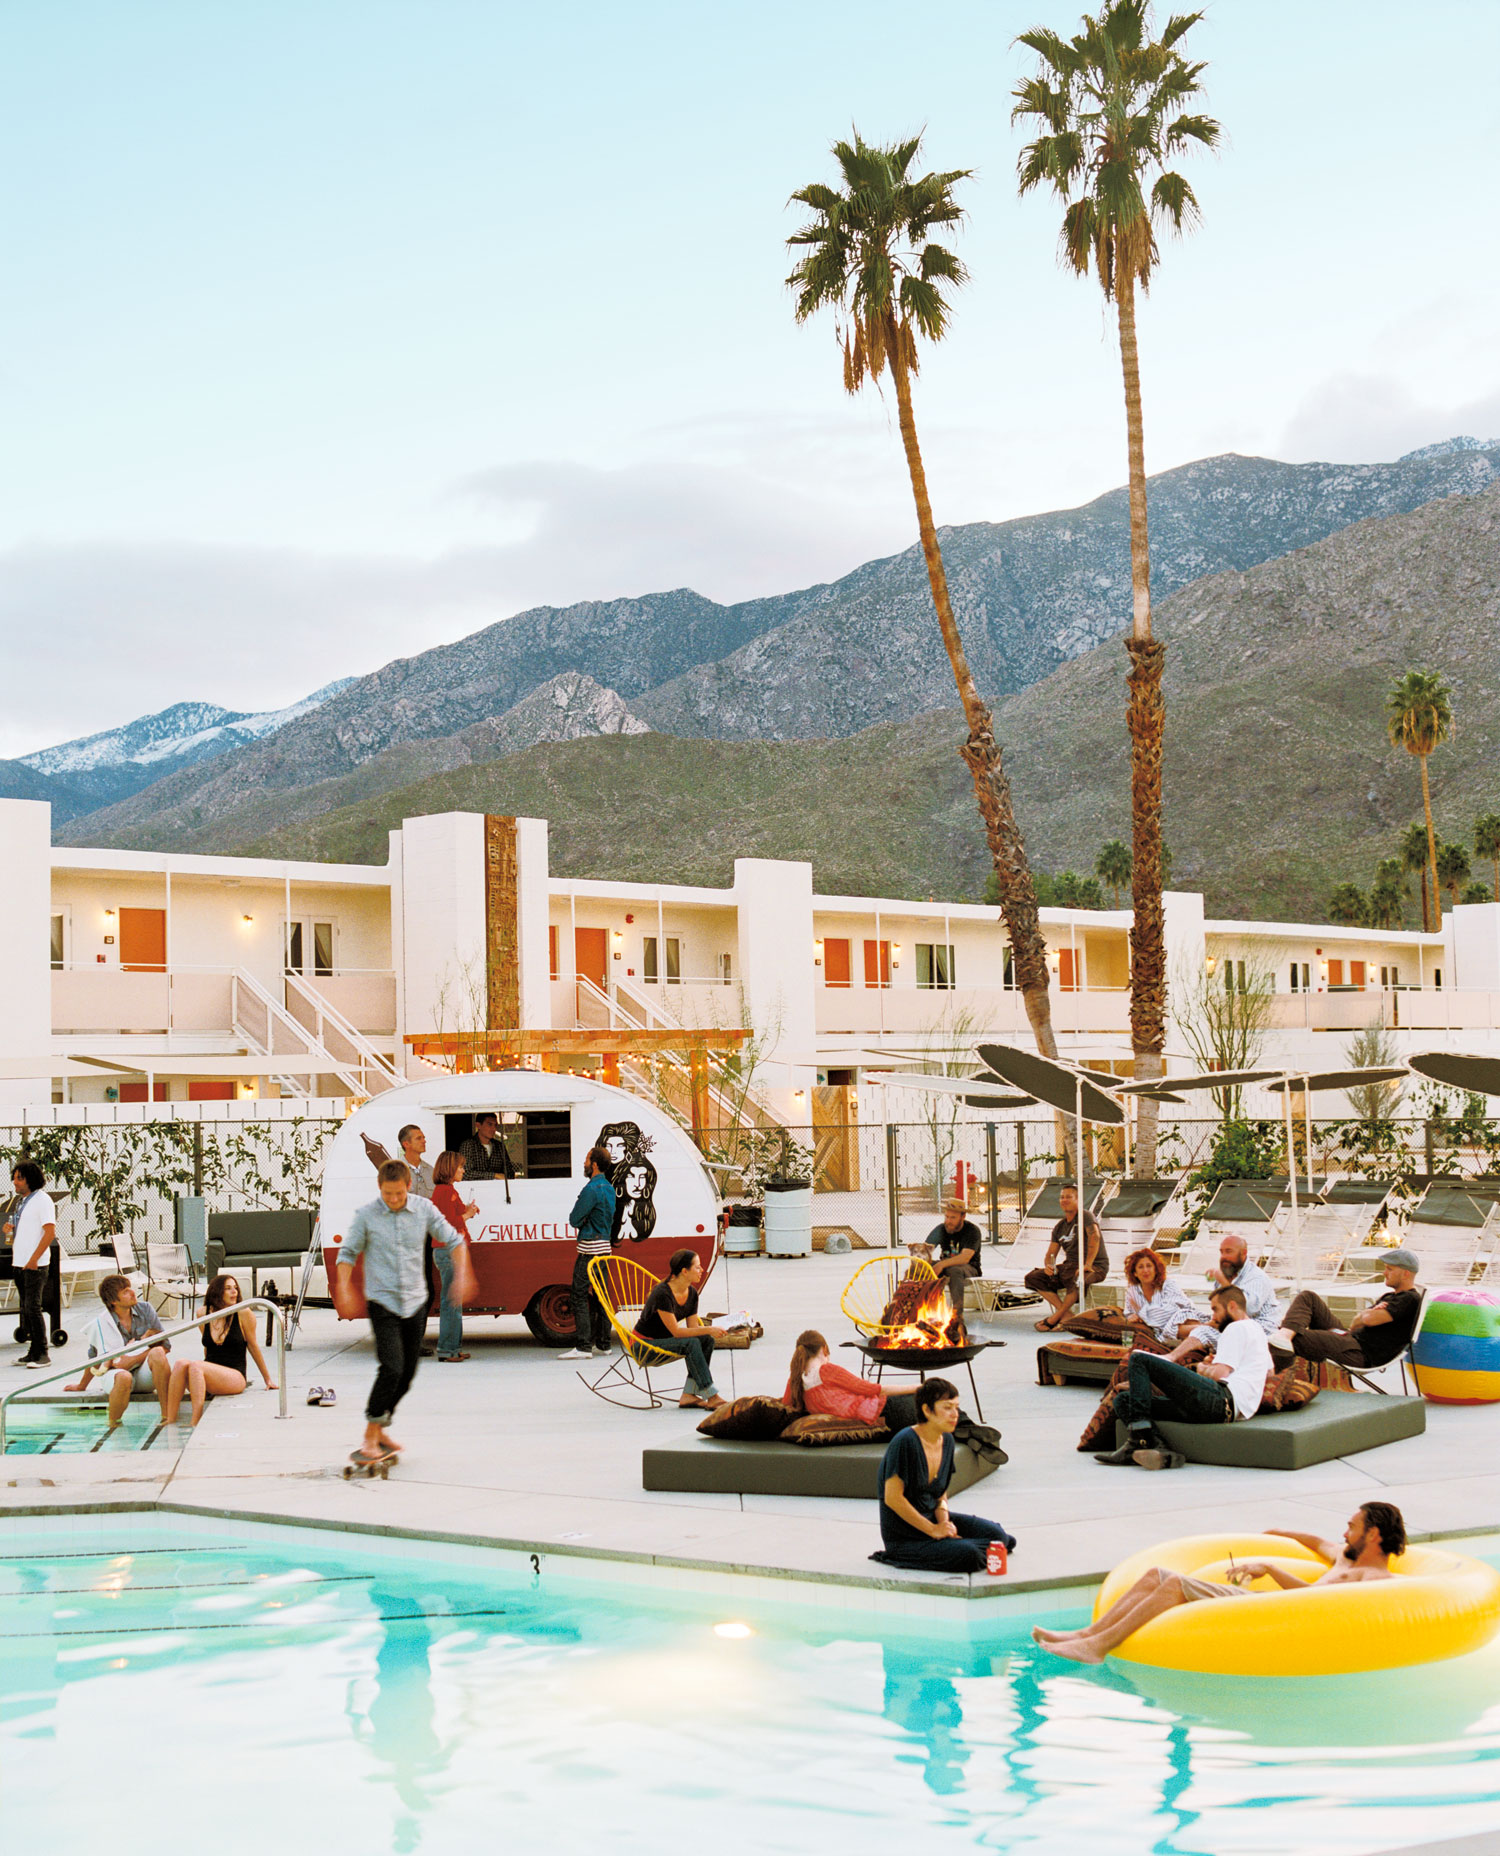 Palm Springs Tourism And Holidays Best Of Palm Springs: Top 10 Places For A Family Vacation